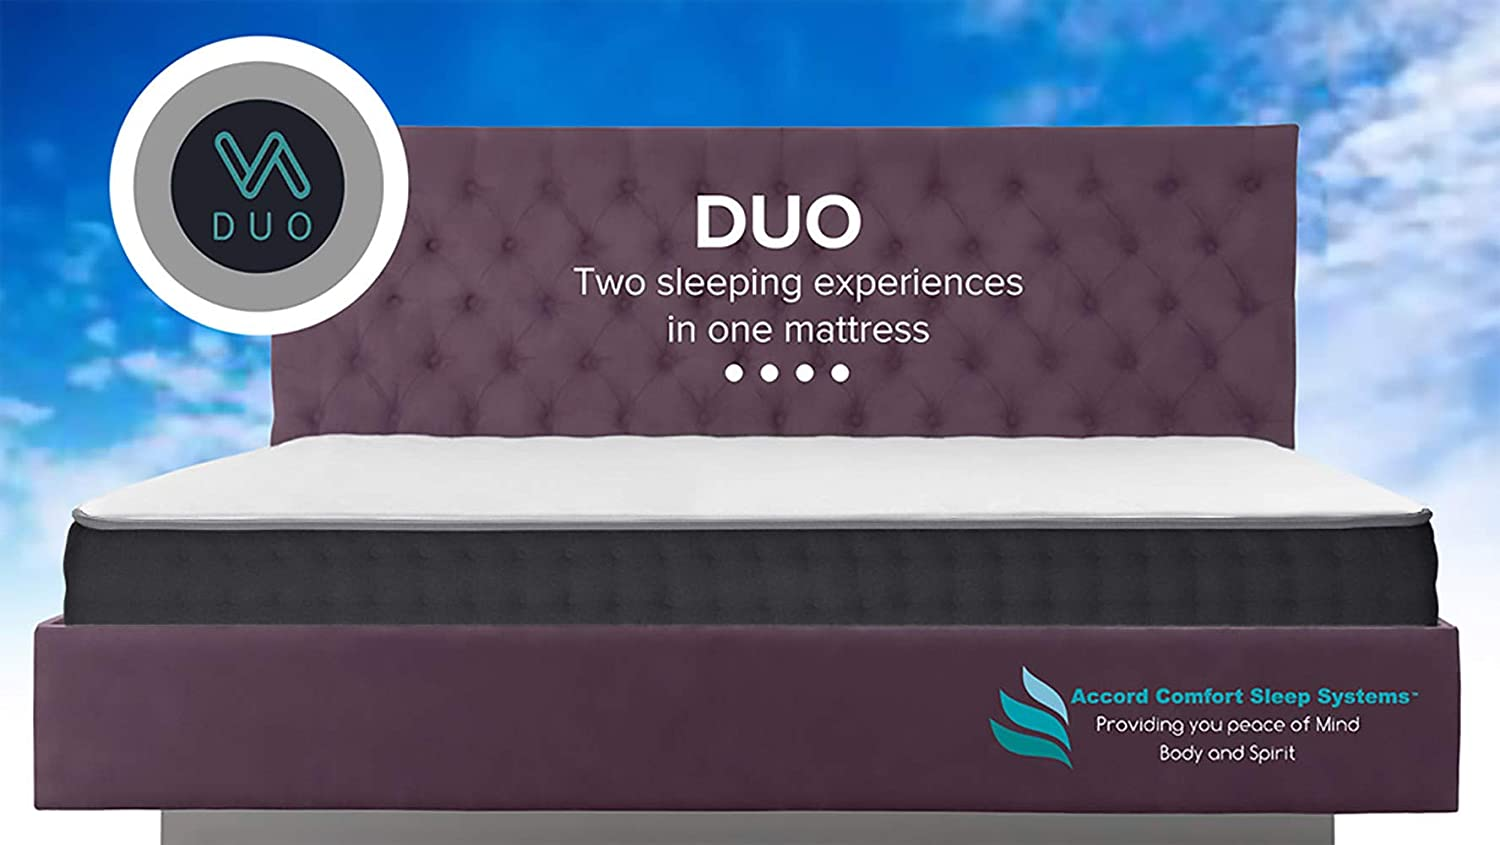 DUO Queen Double Sided Mattress 2 Beds in 1, Firm or Plush Outlast Cooling Fabic Full 10 Year Warranty, 60 Day Sleep Guarantee